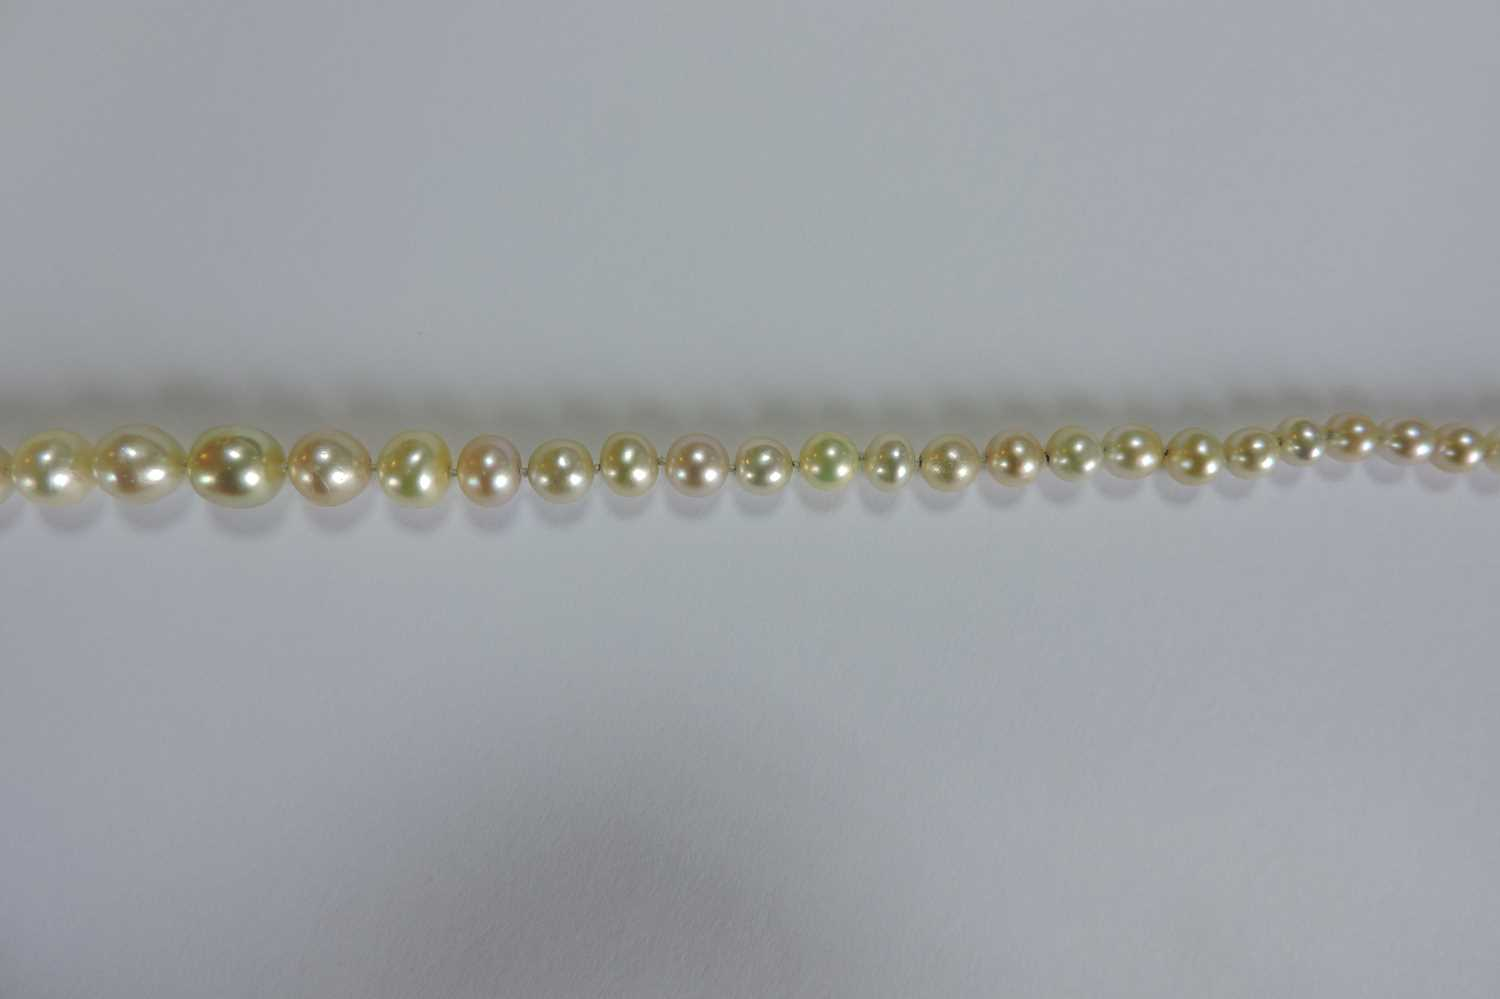 A single row graduated natural saltwater pearl necklace, - Image 12 of 12